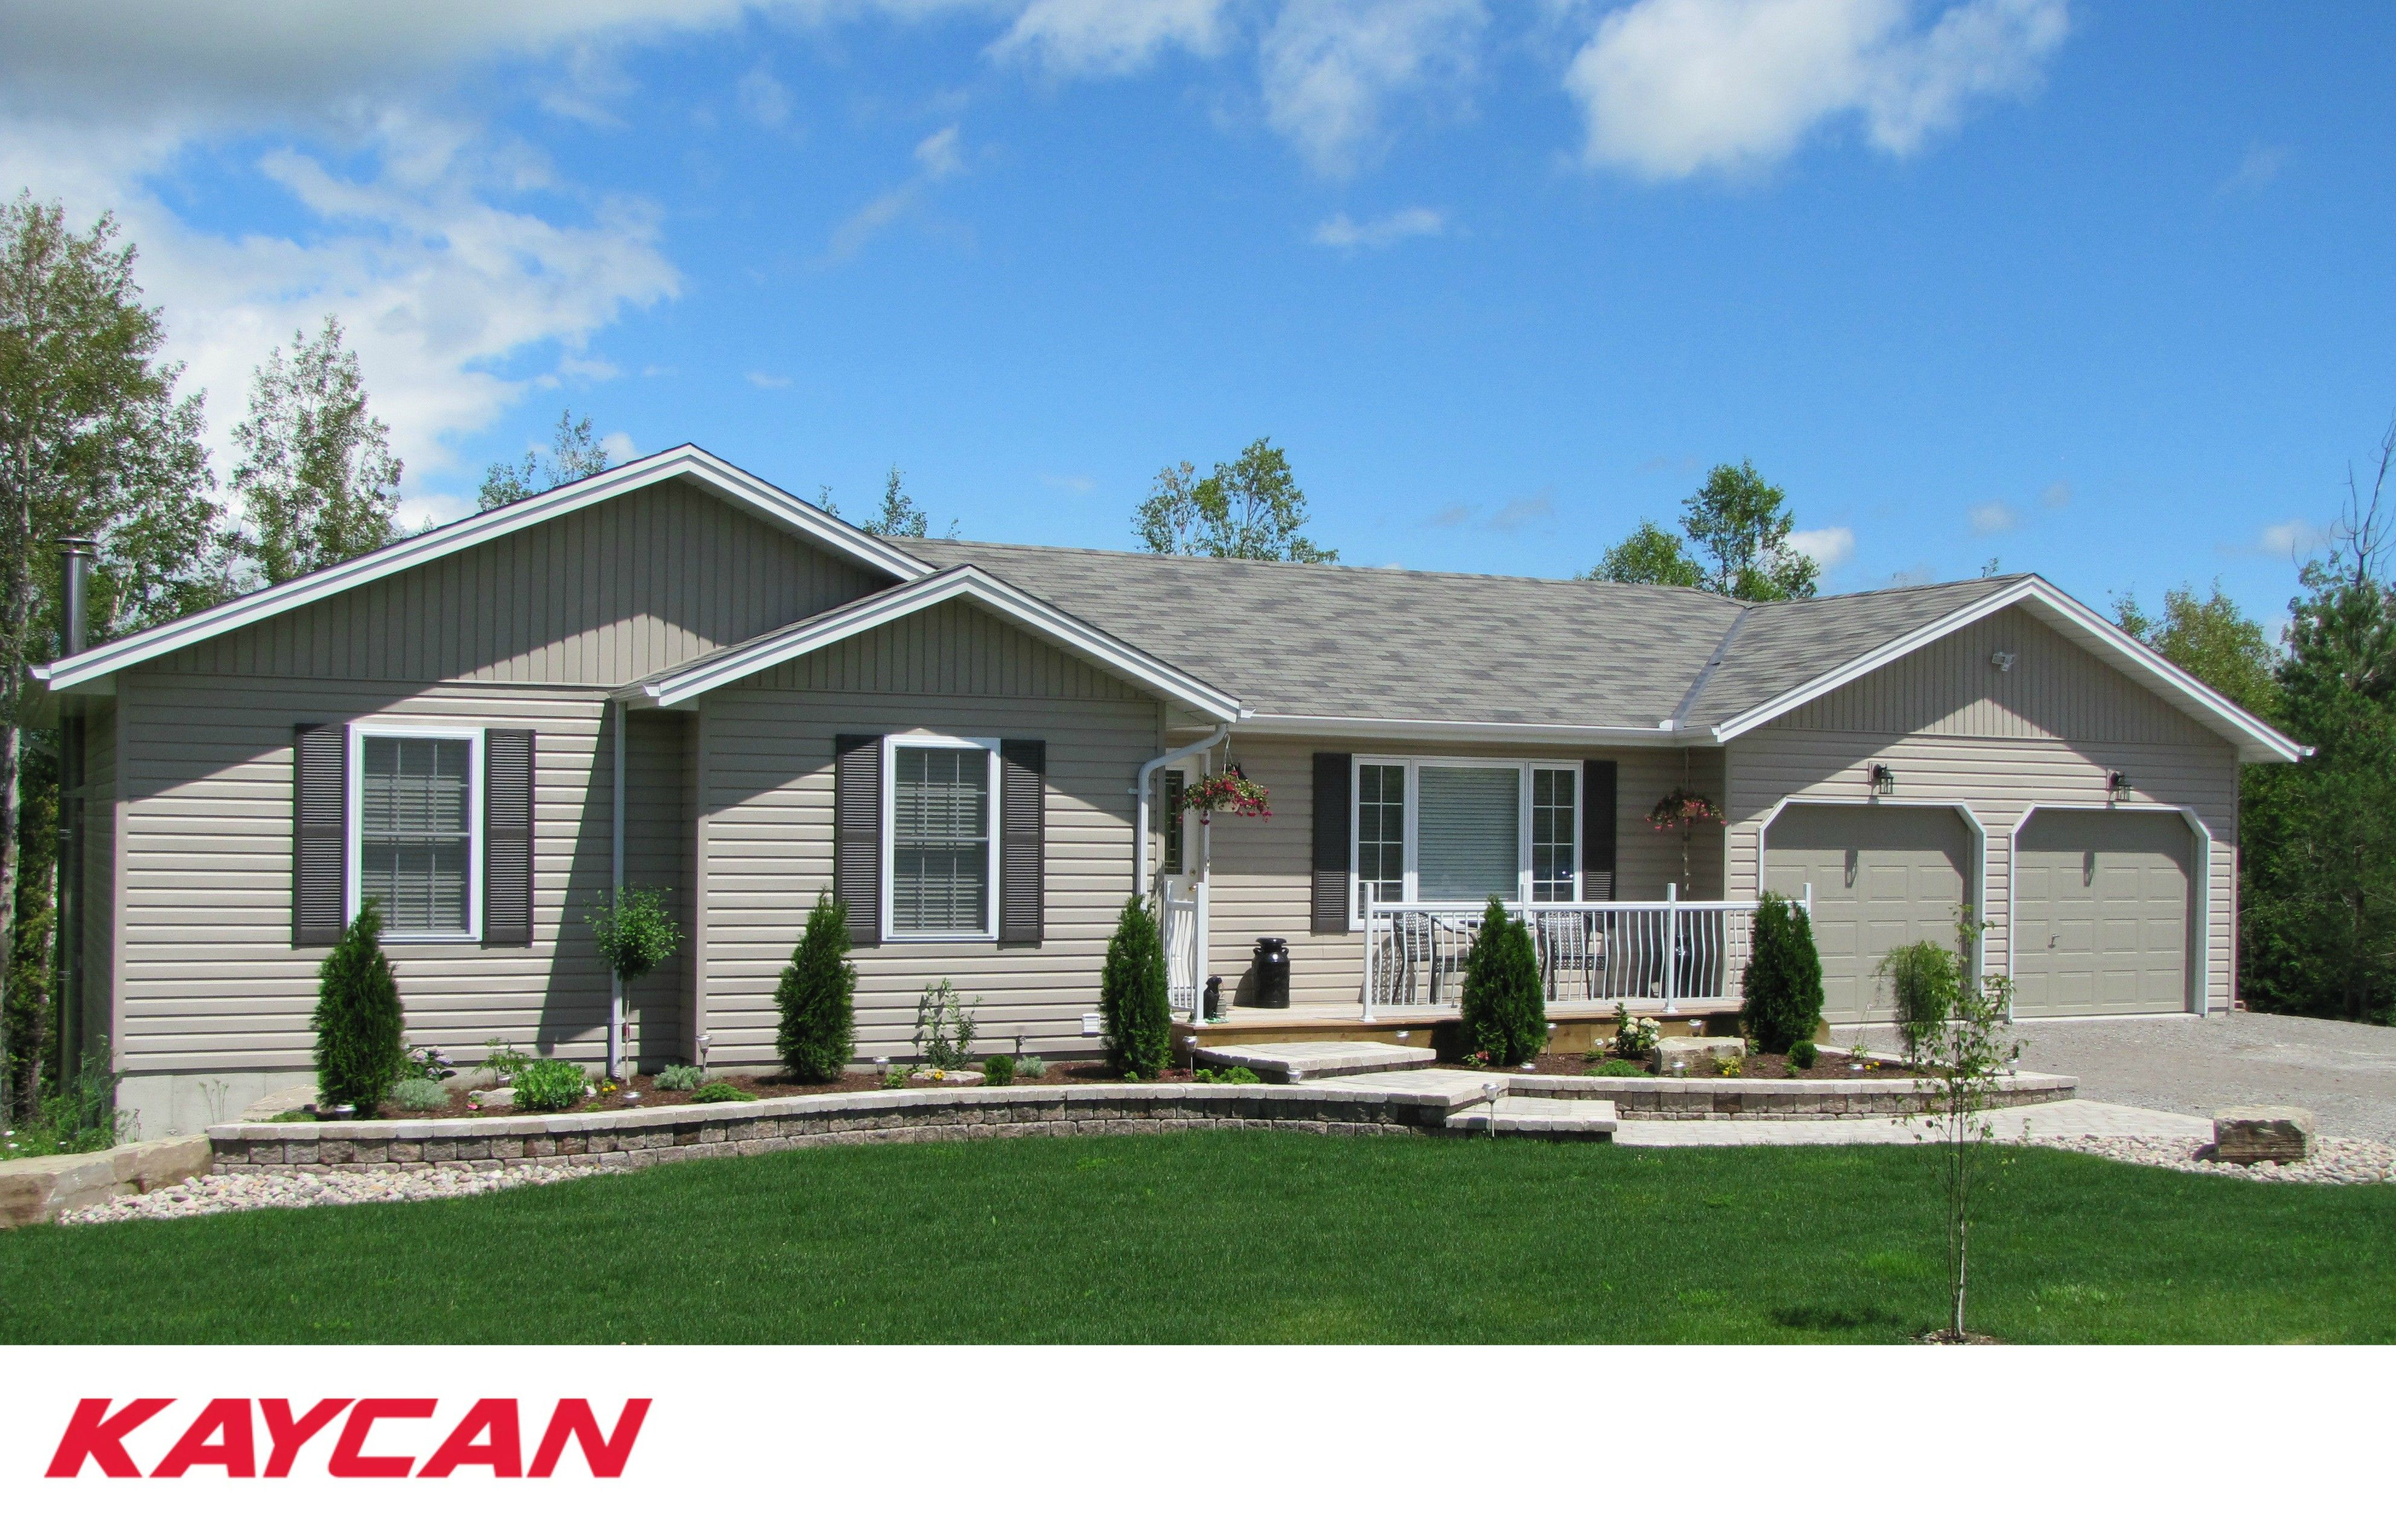 Vinyl Siding Dramatically And Cost Effectively Transforms The Exterior Of Any Home Kaycan S High Perfor Vinyl Siding Vinyl Siding Manufacturers House Exterior